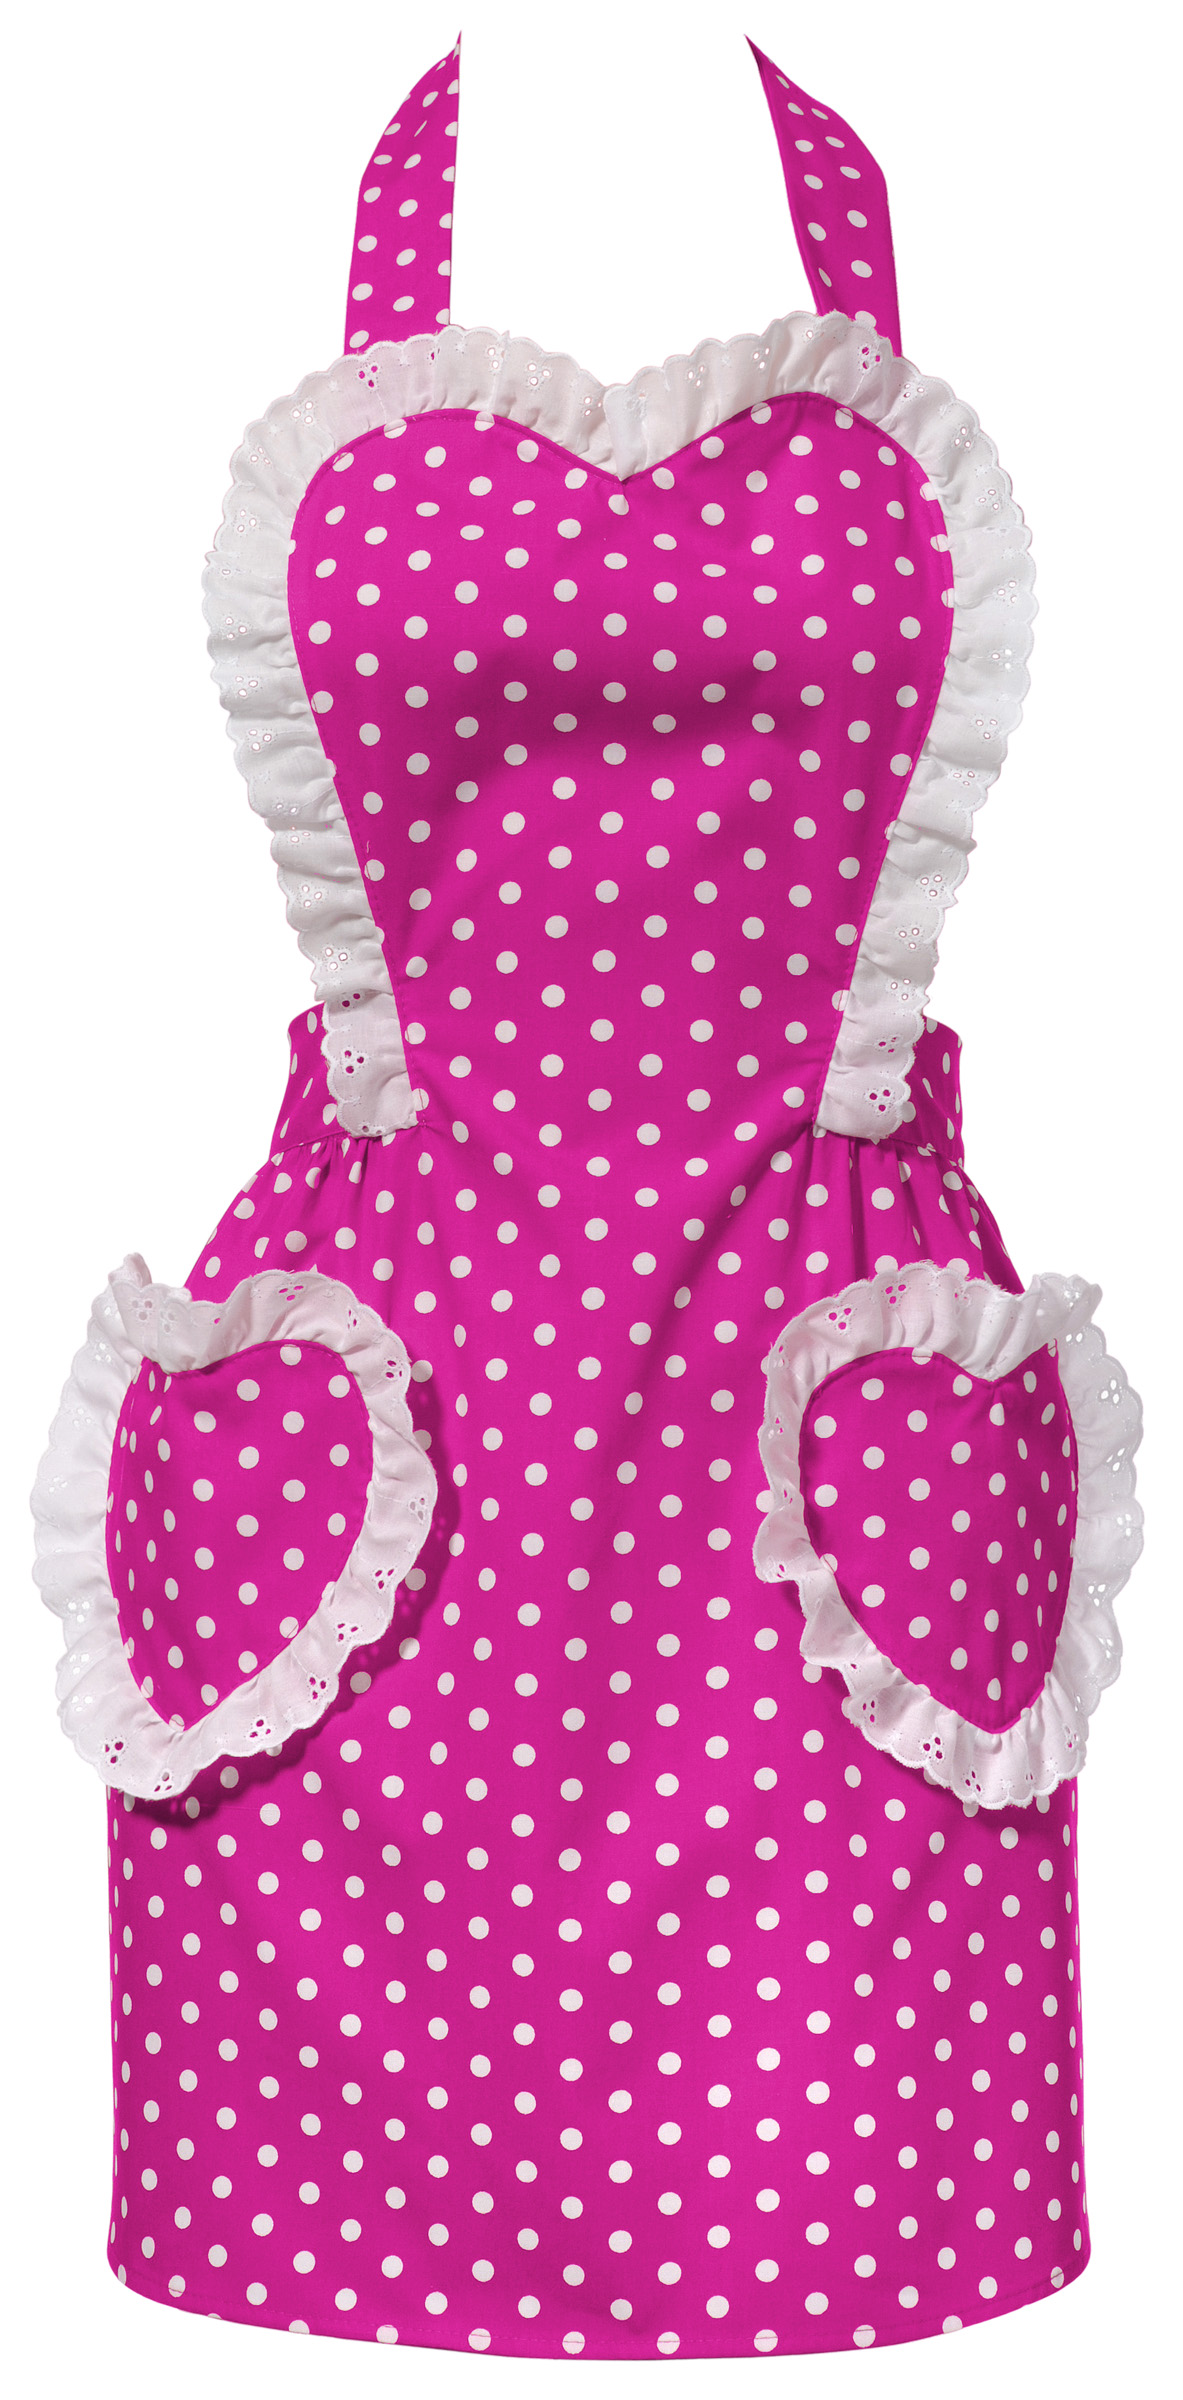 Kitchen Apron : sweetheart apron from Carolyns Kitchen. These sweet and sassy aprons ...